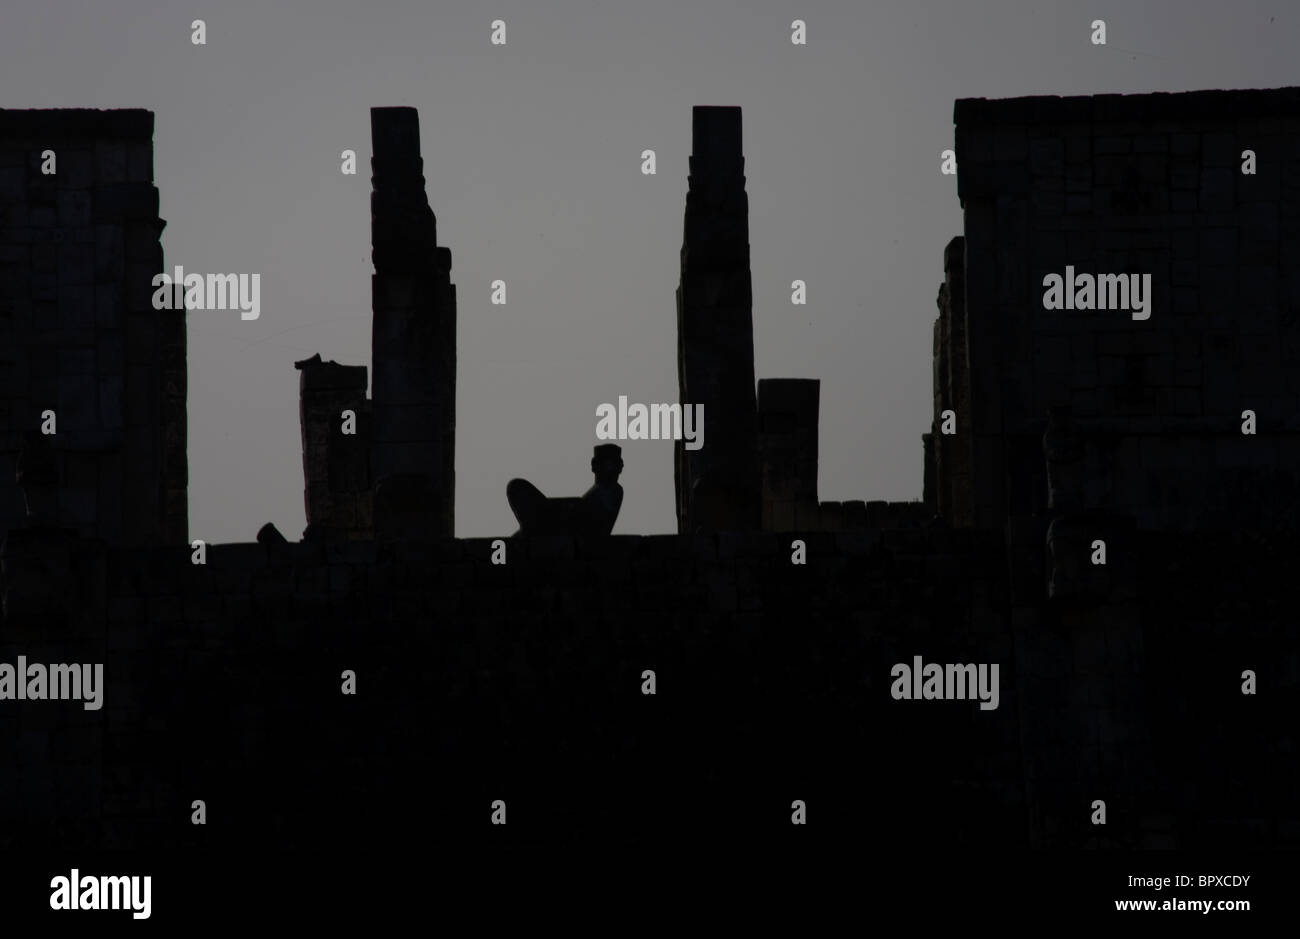 The silhouette of a Mayan temple among the ruins of Chichen Itza, Yucatan Peninsula, Mexico, July 16, 2009. - Stock Image